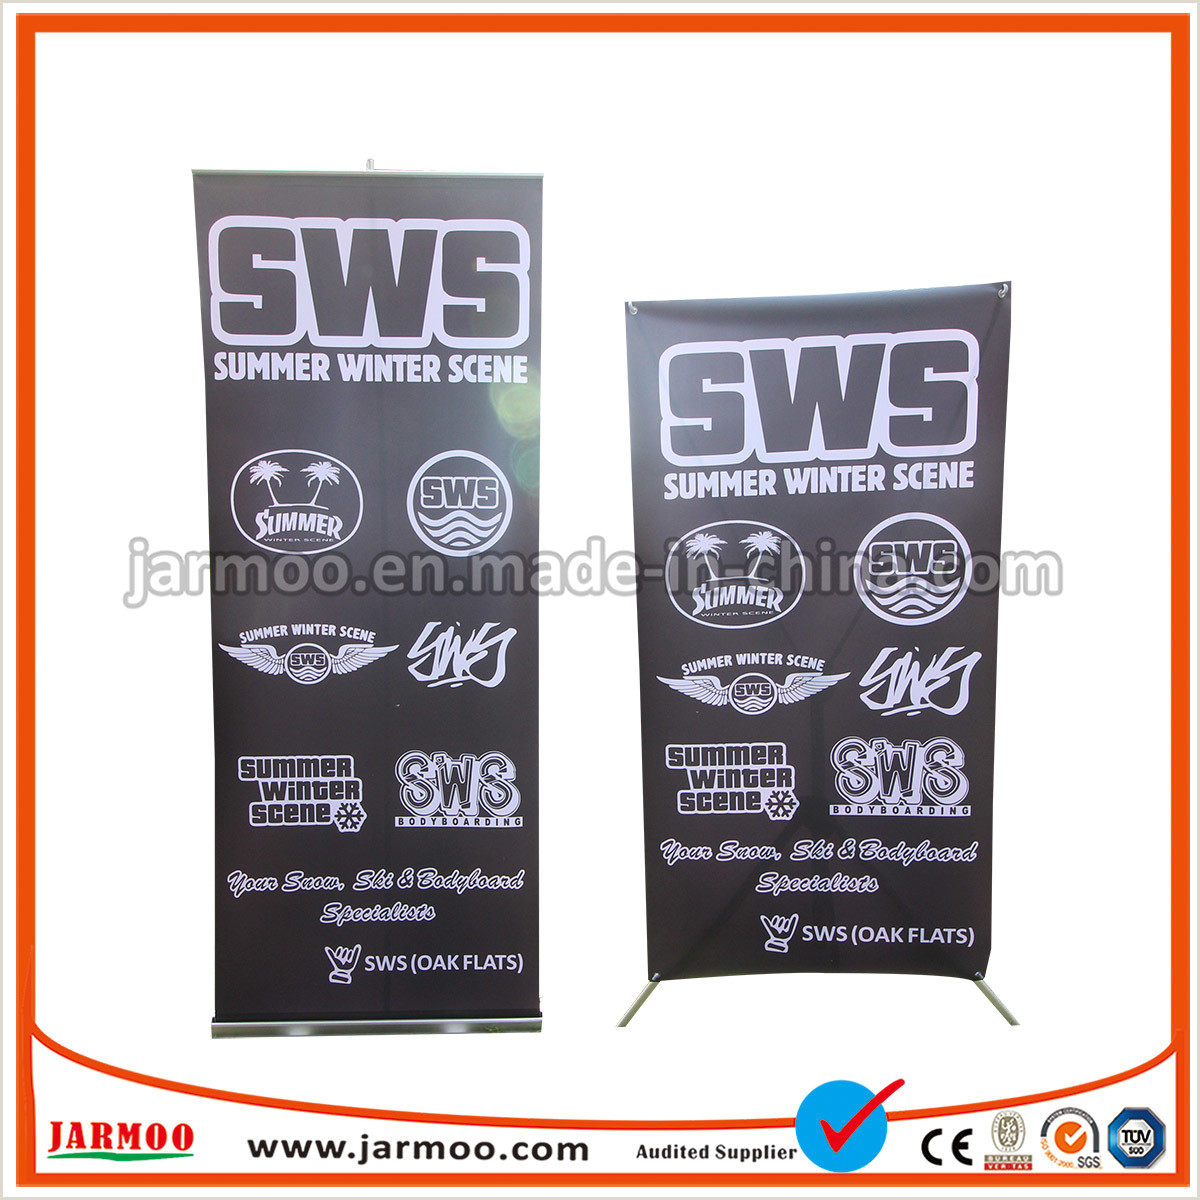 Stand Up Banner Dimensions China Stand Roll Up Banner Design Size Stand Roll Up Banner Design Size Wholesale Manufacturers Price